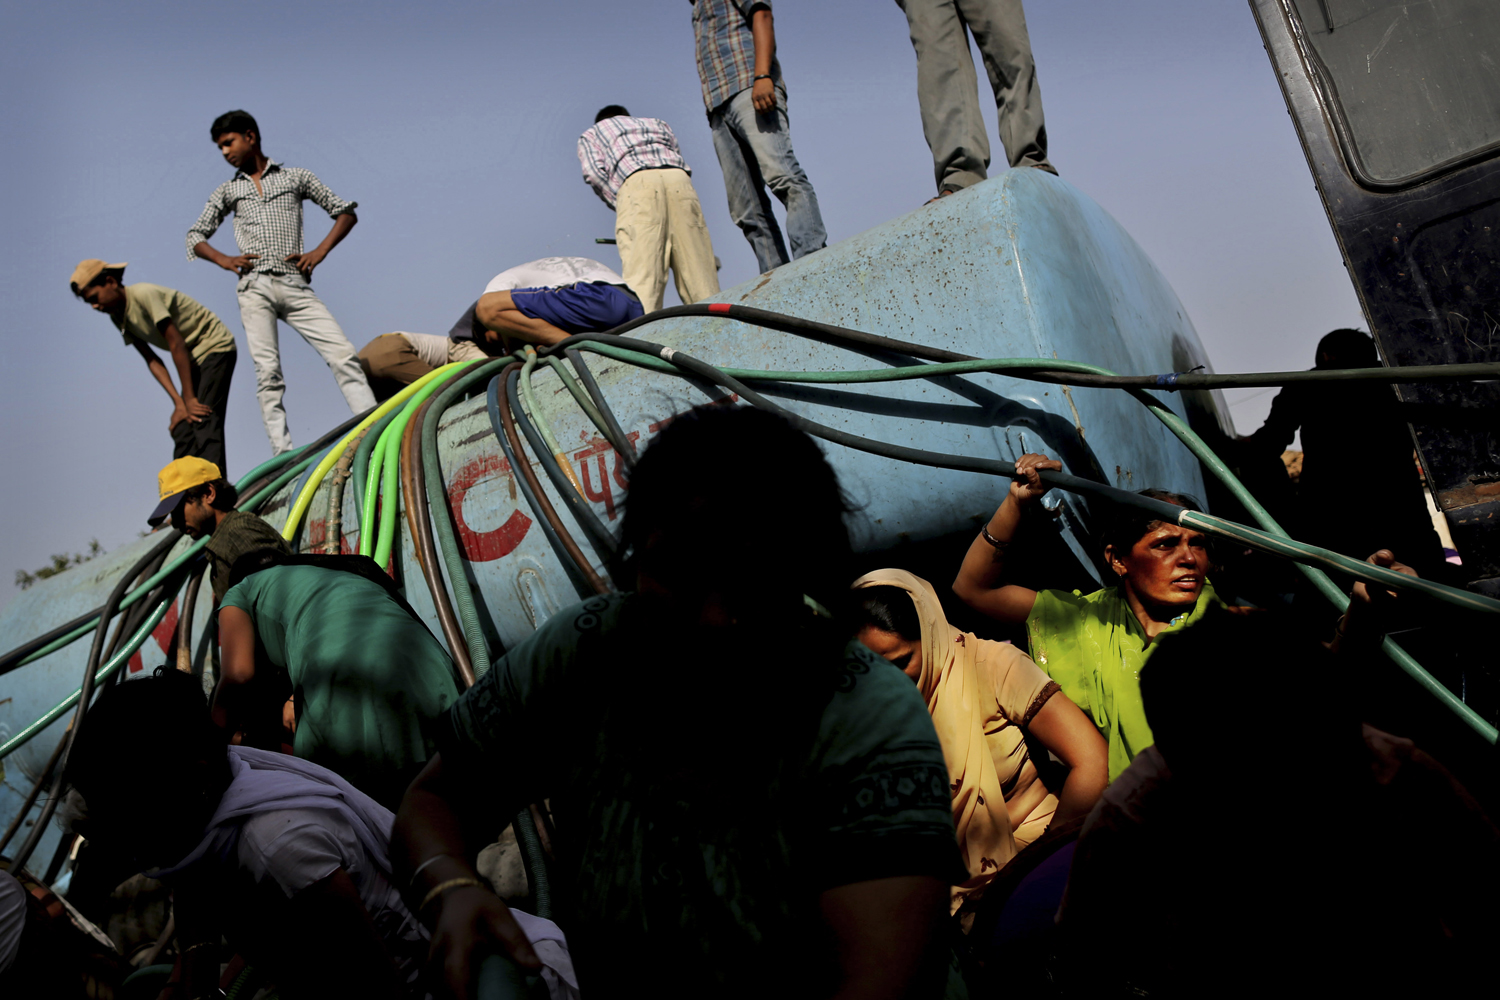 May 23, 2013. Indian people stand on a government tanker as others struggle with hoses to collect drinking water from the tanker because of short supply in running water taps at a slum in New Delhi, India.